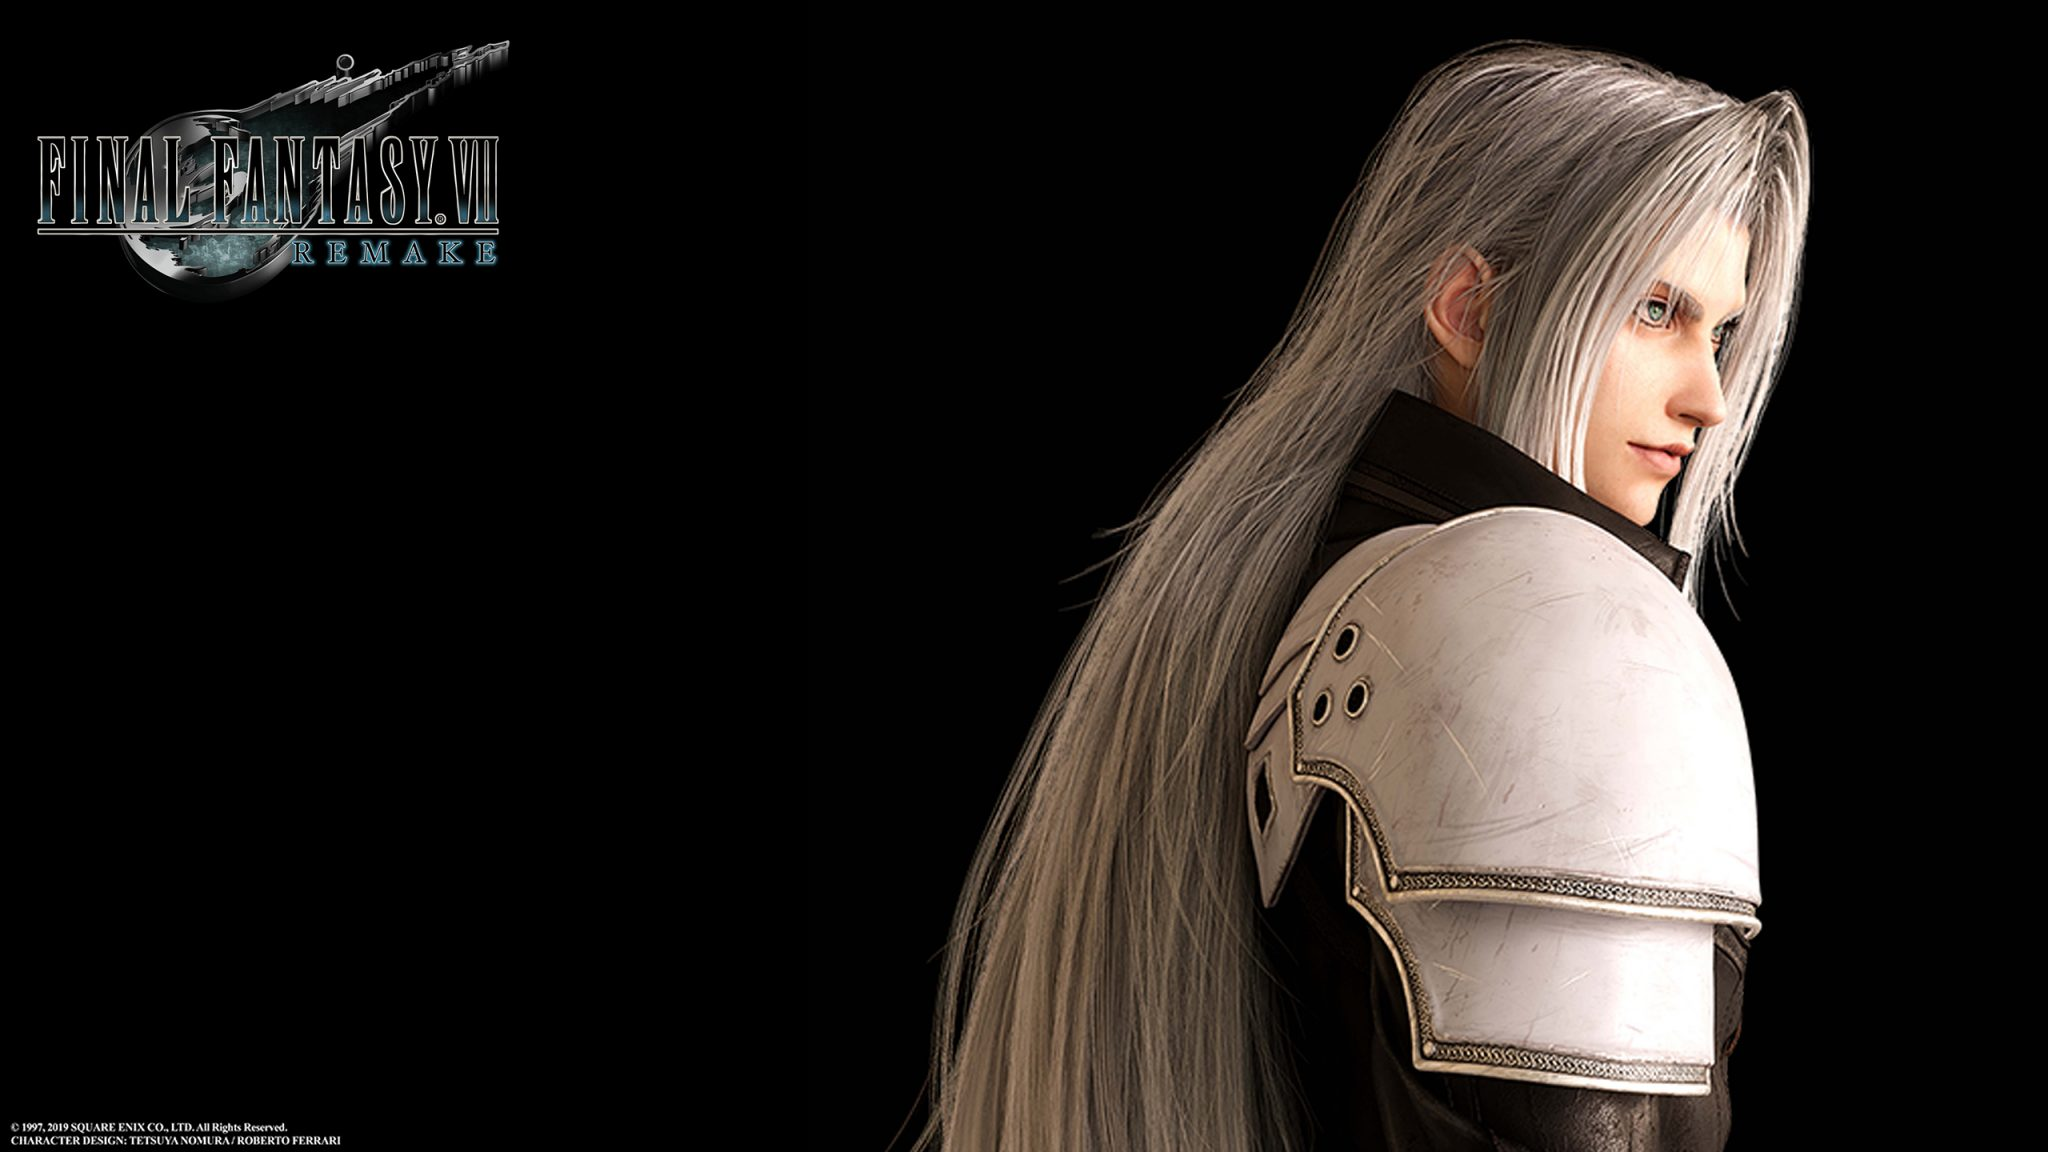 Final Fantasy Vii Remake Sephiroth Wallpaper Cat With Monocle